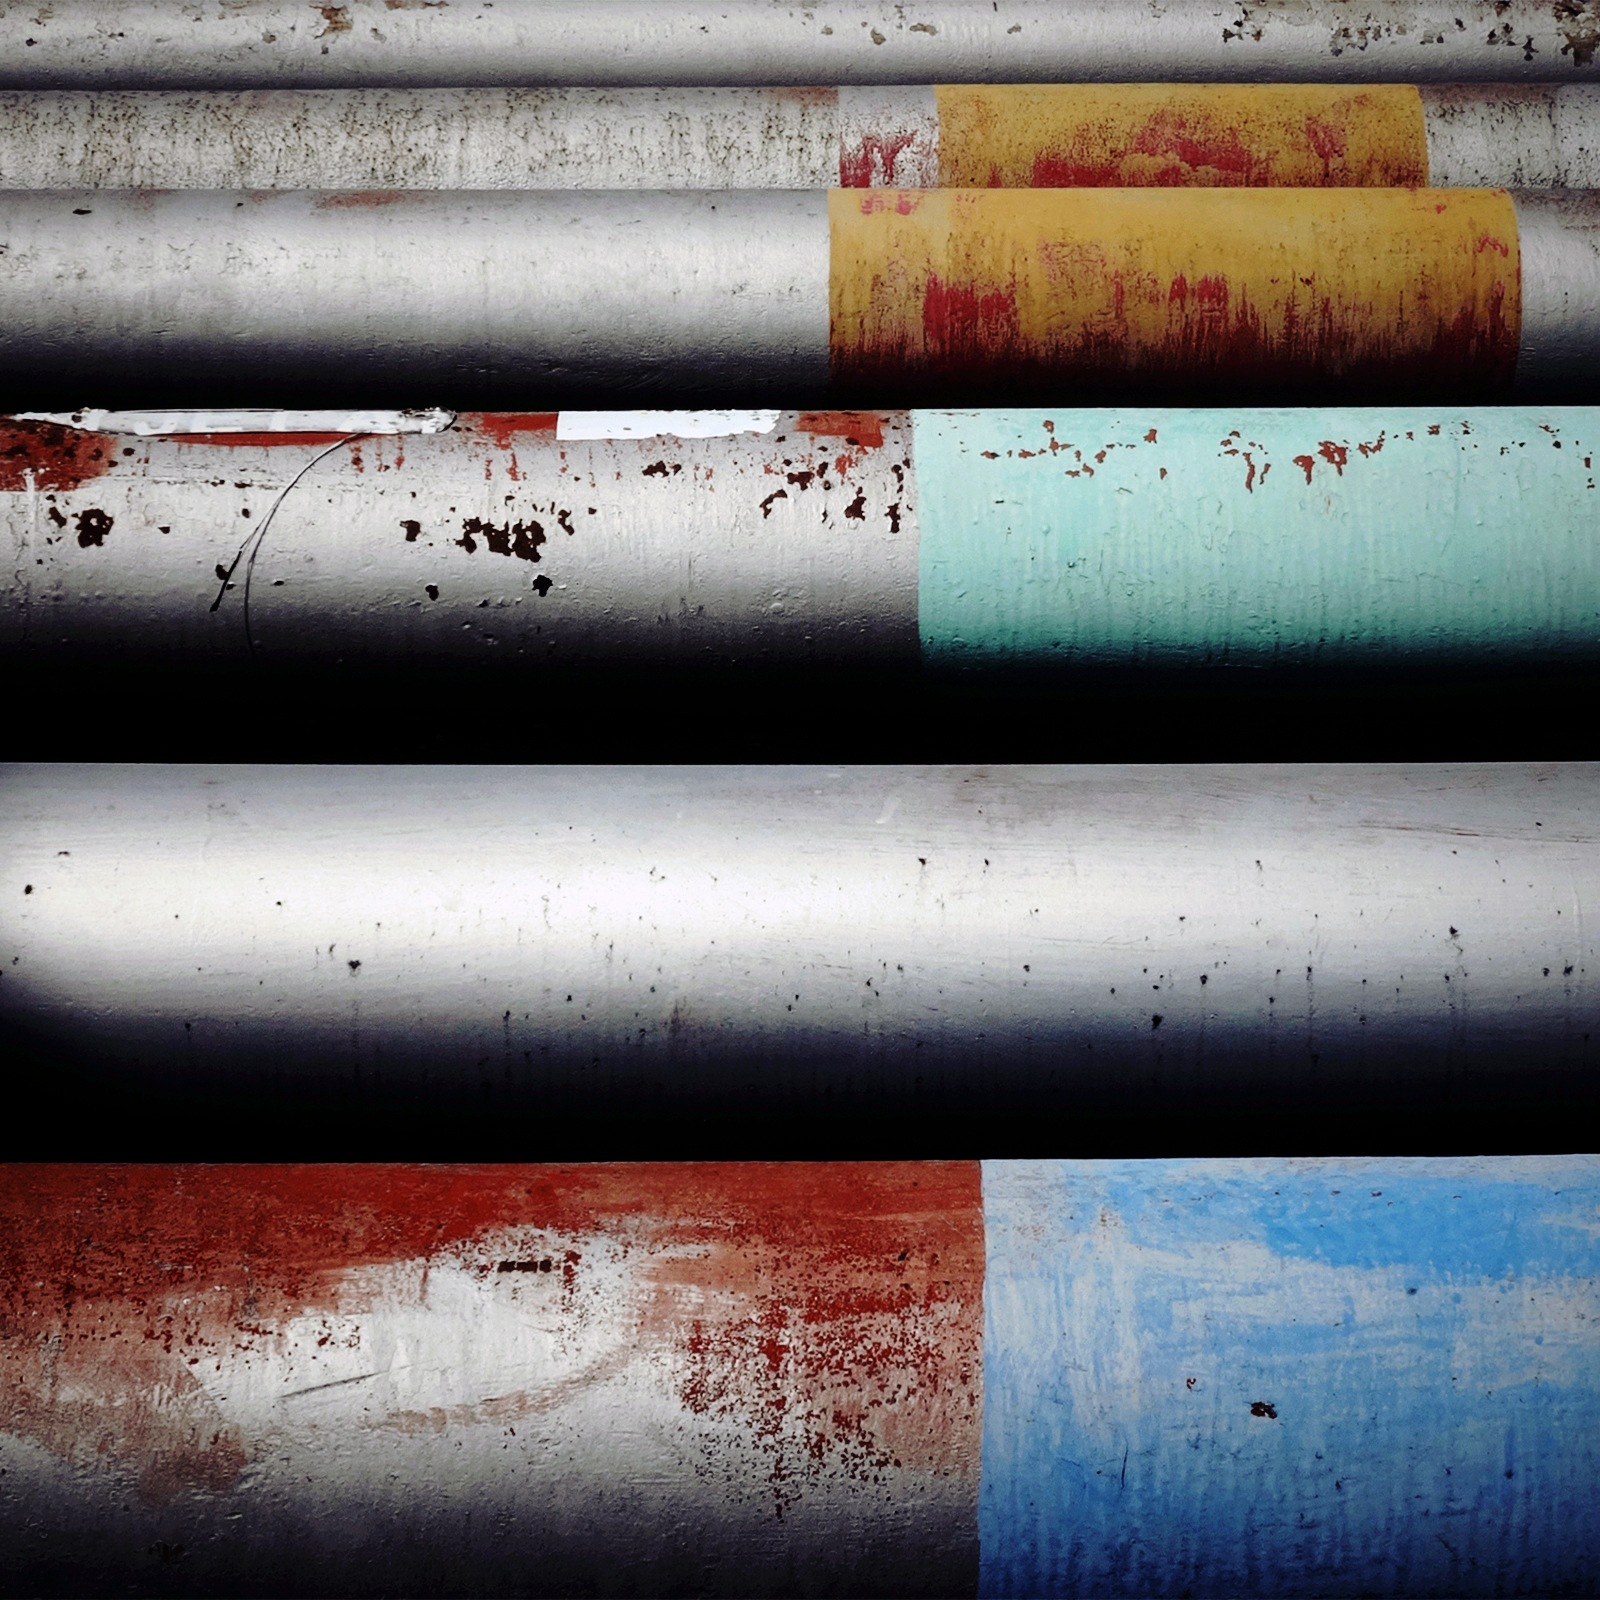 Pipes by WillTC